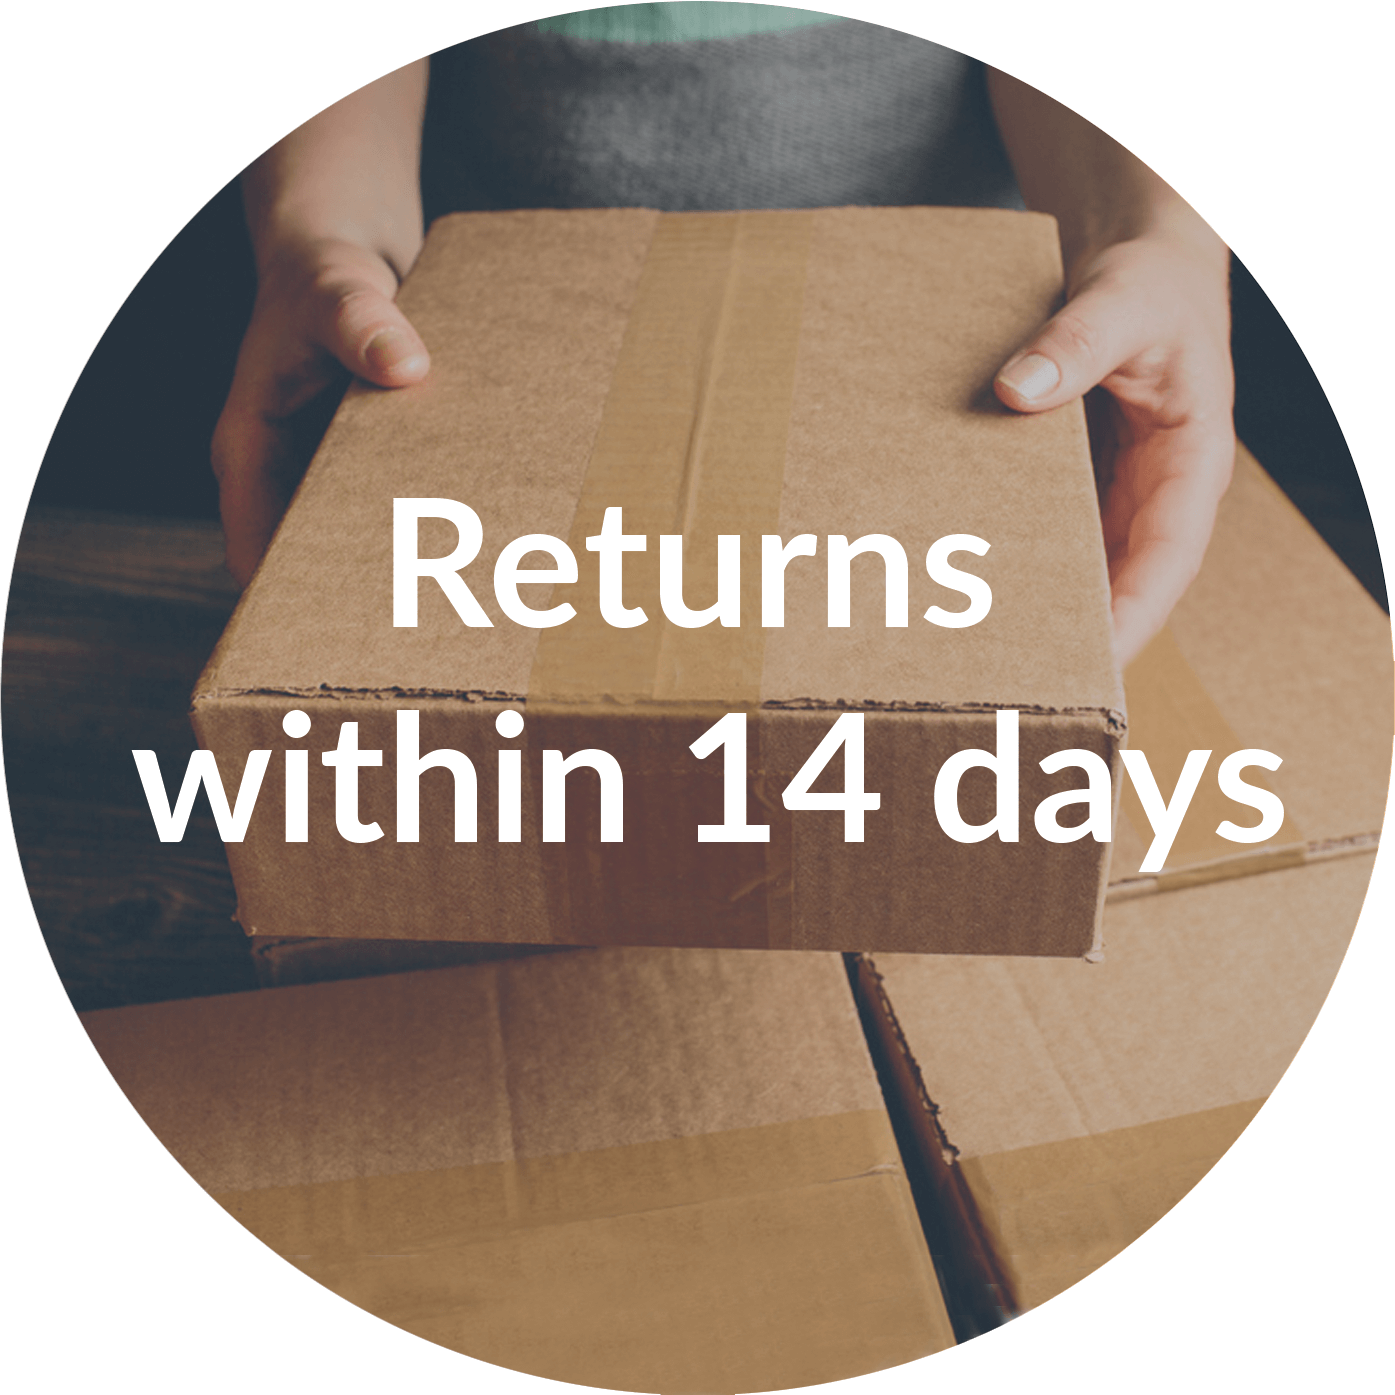 Returns within 14 days